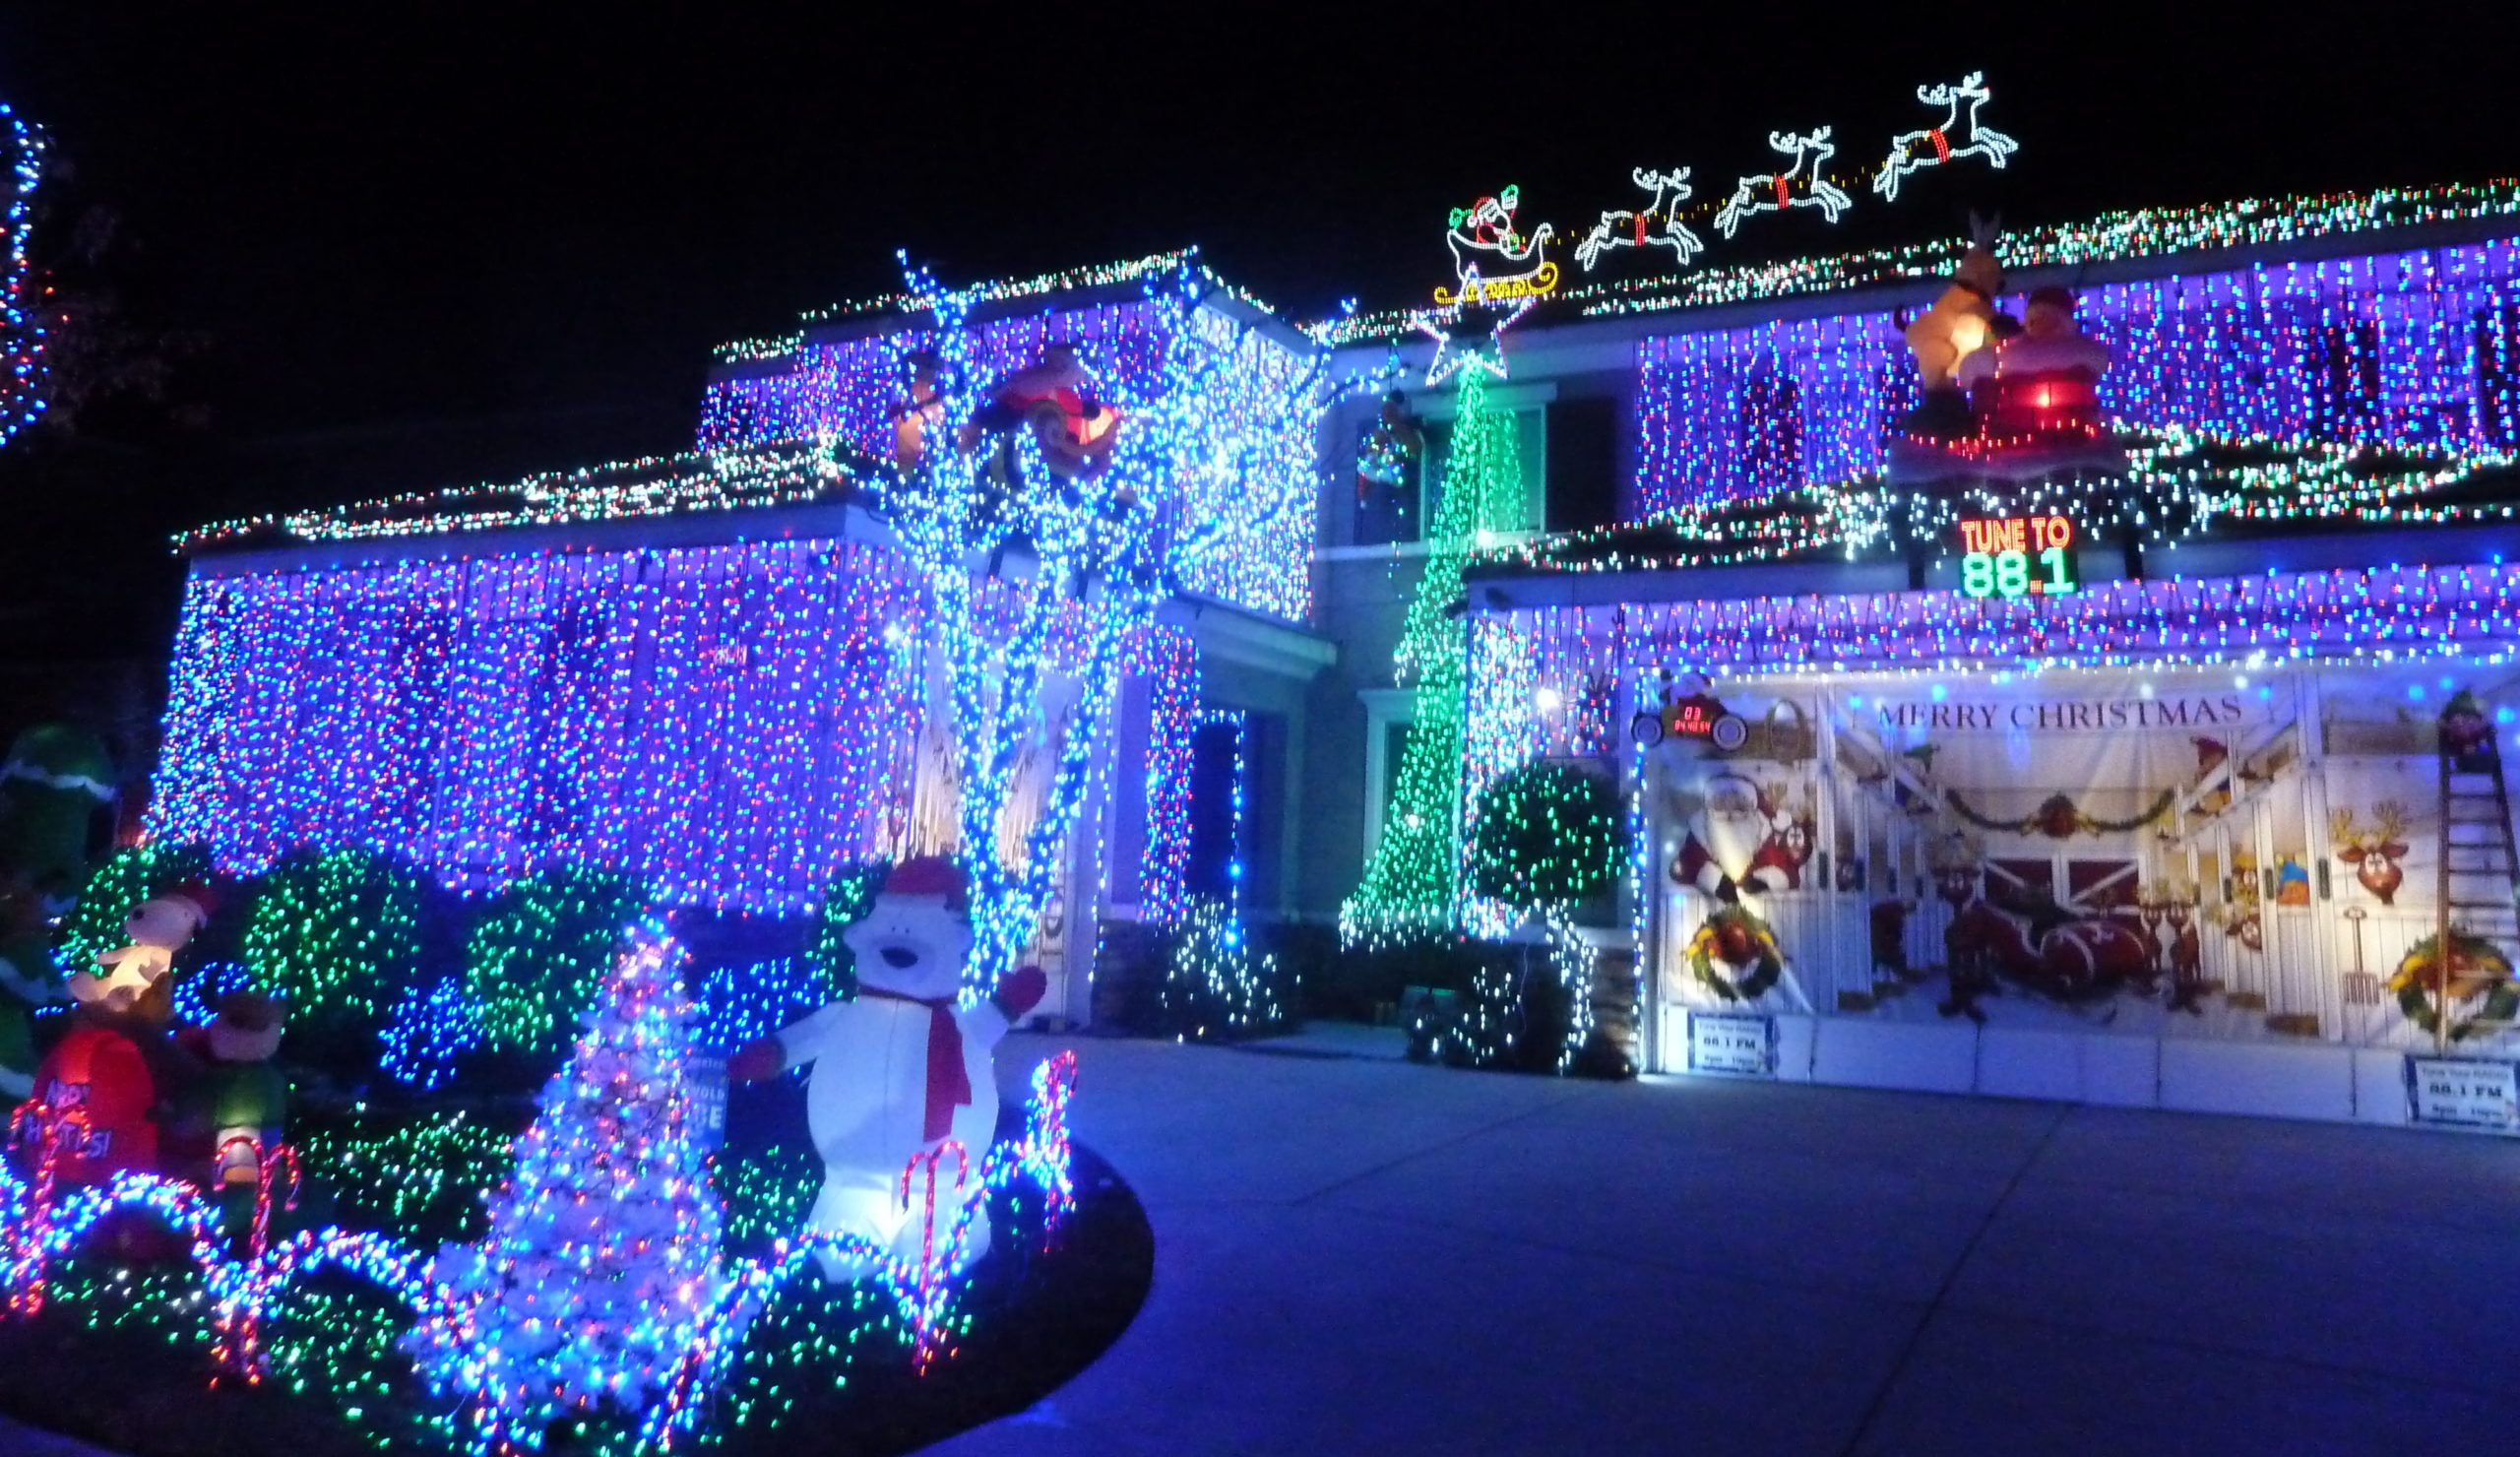 Christmas Lights In Temecula 2020 Brewens Empire Trolley » 25 Days of Christmas – Holiday Lights